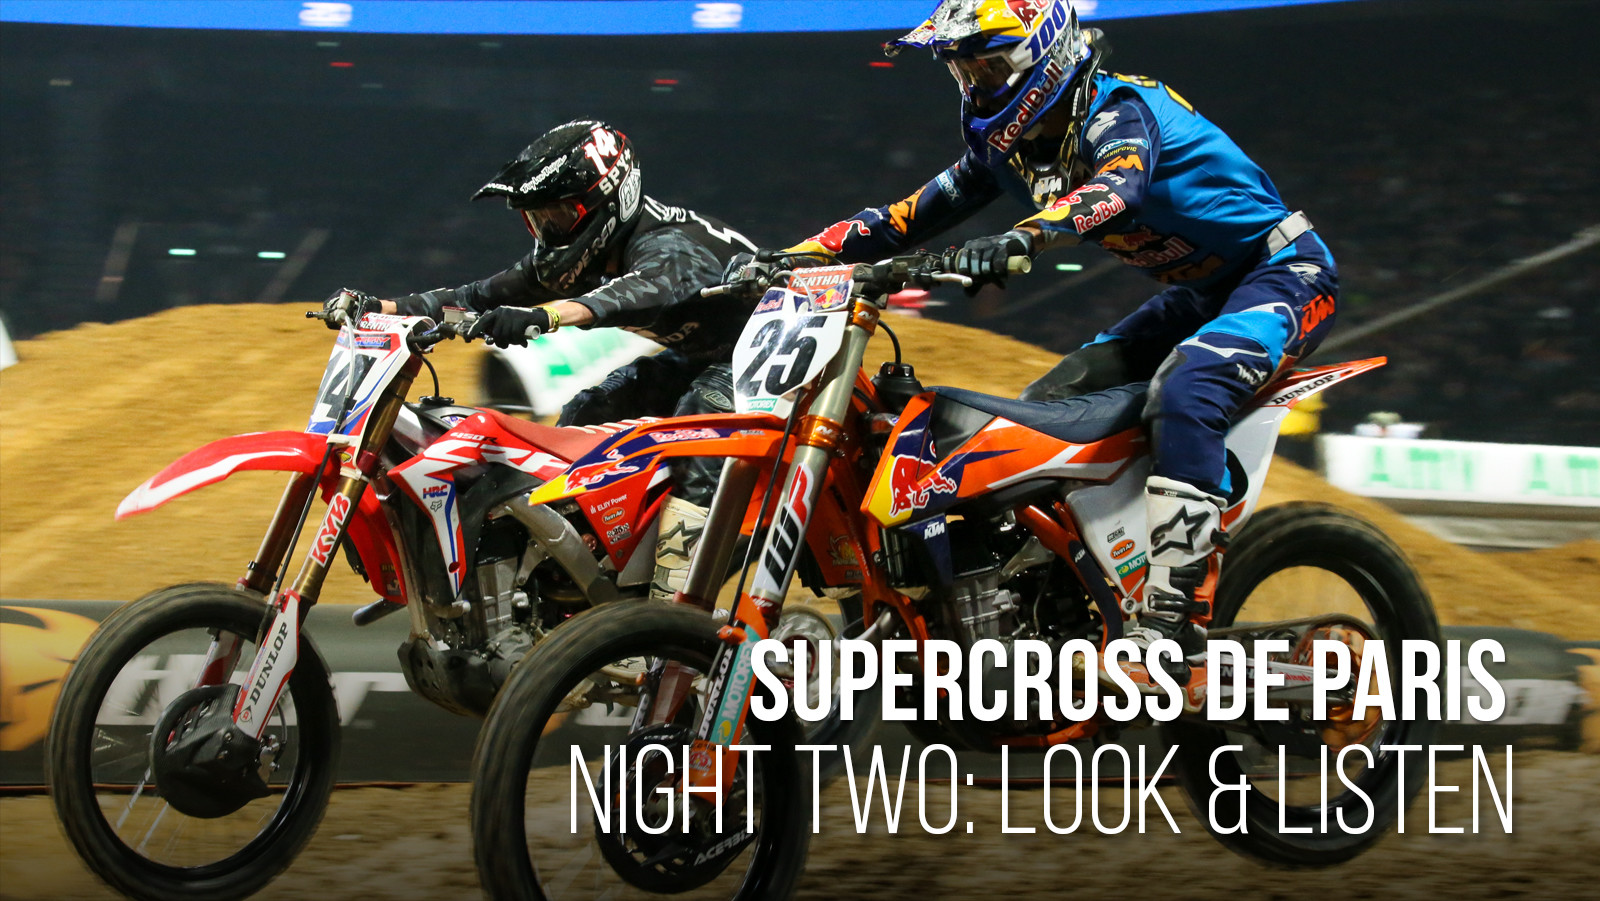 Supercross de Paris: Day Two, Look and Listen